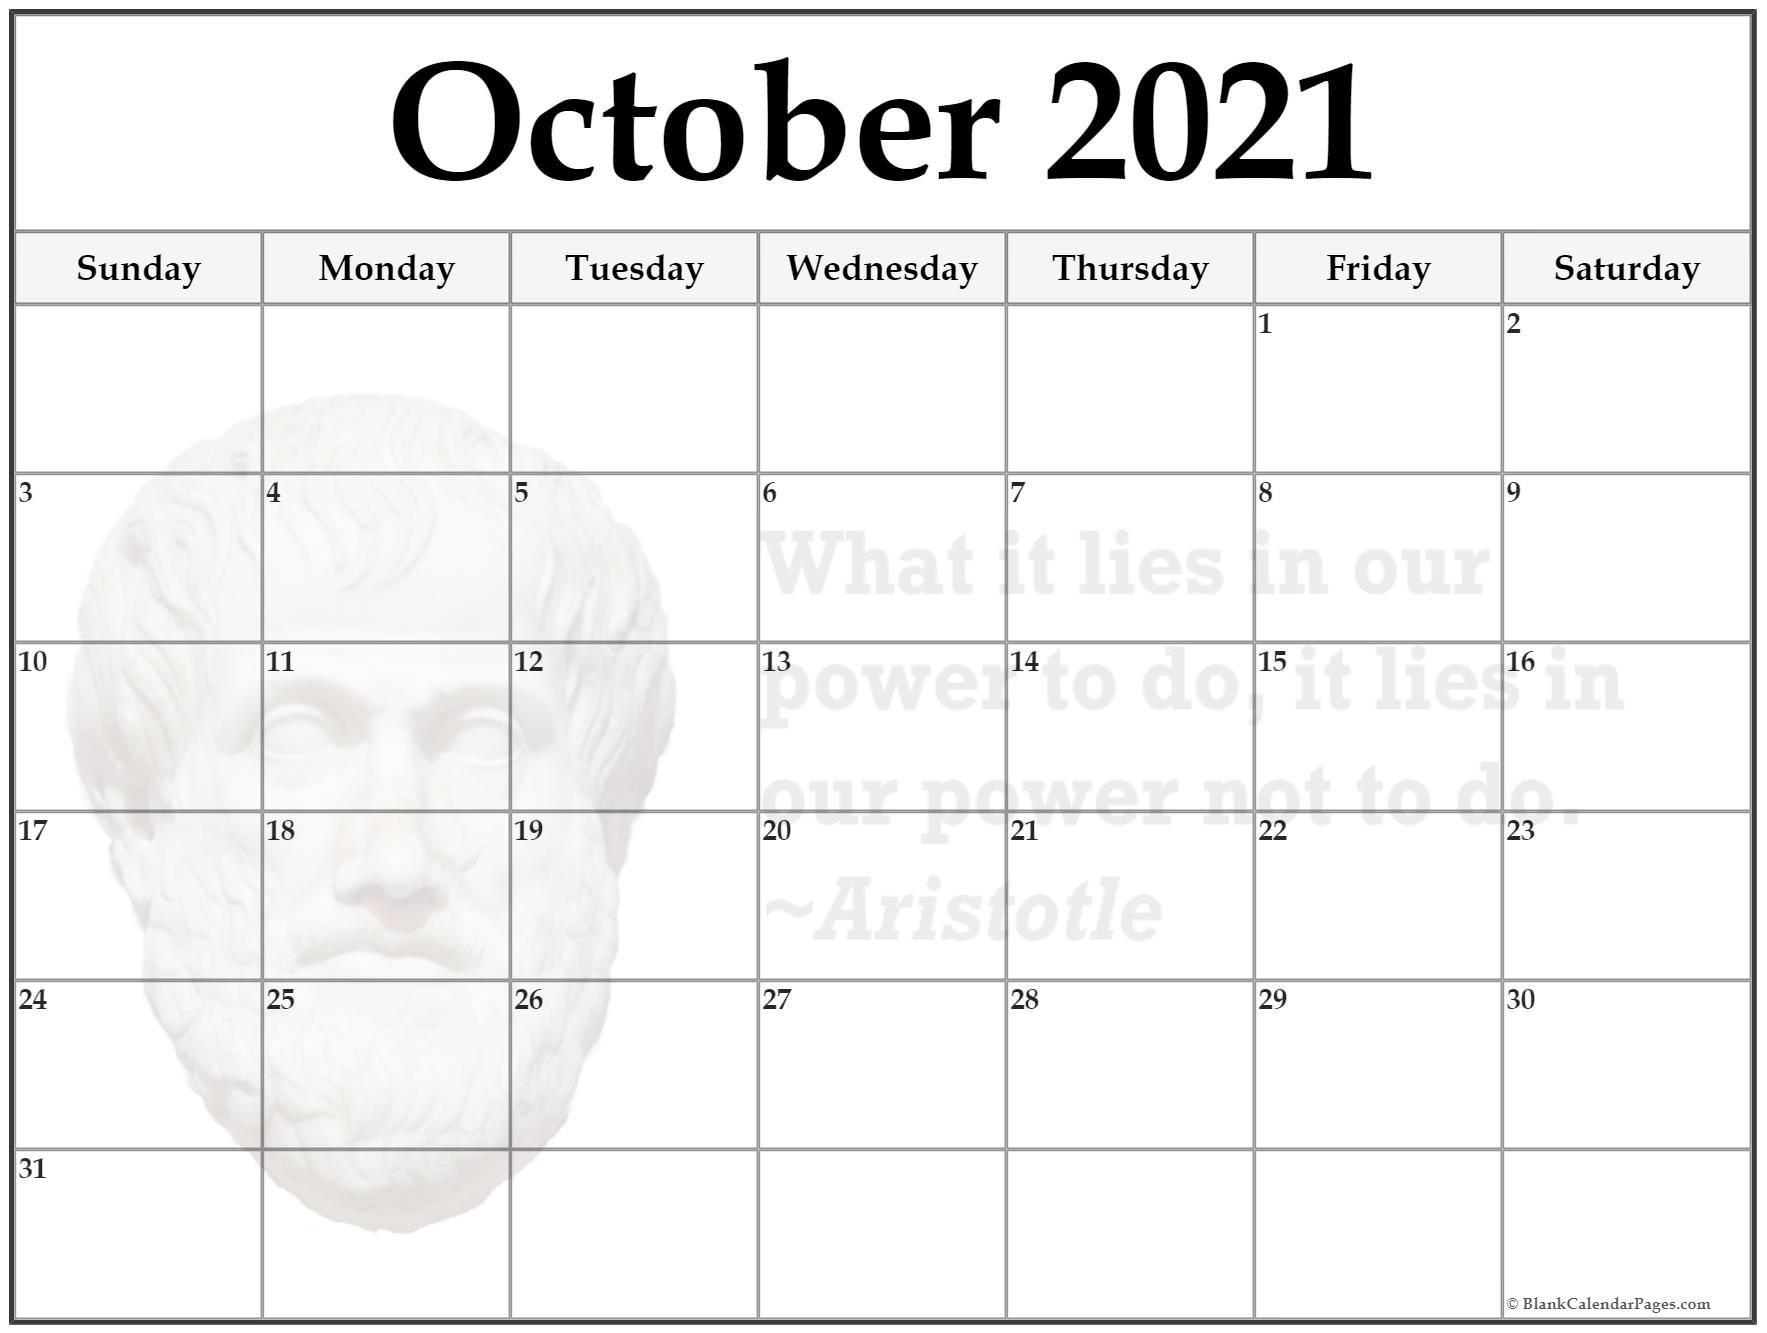 October aristotle calendar 2020What is lies in our power to do, it lies in our power not to do ~Aristotle